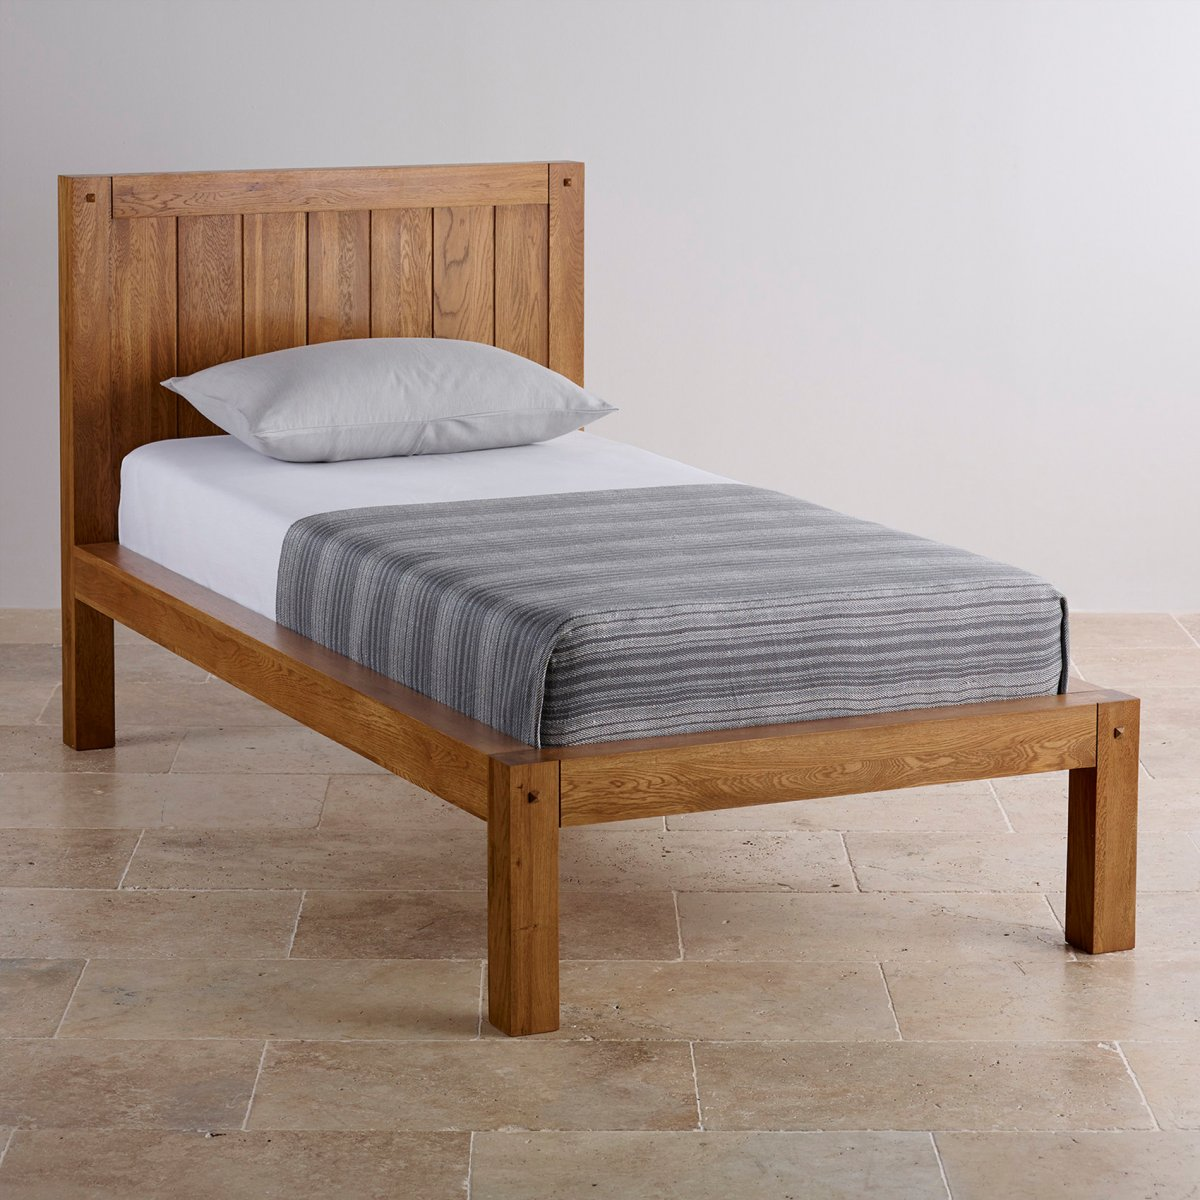 Quercus Single Bed Rustic Solid Oak